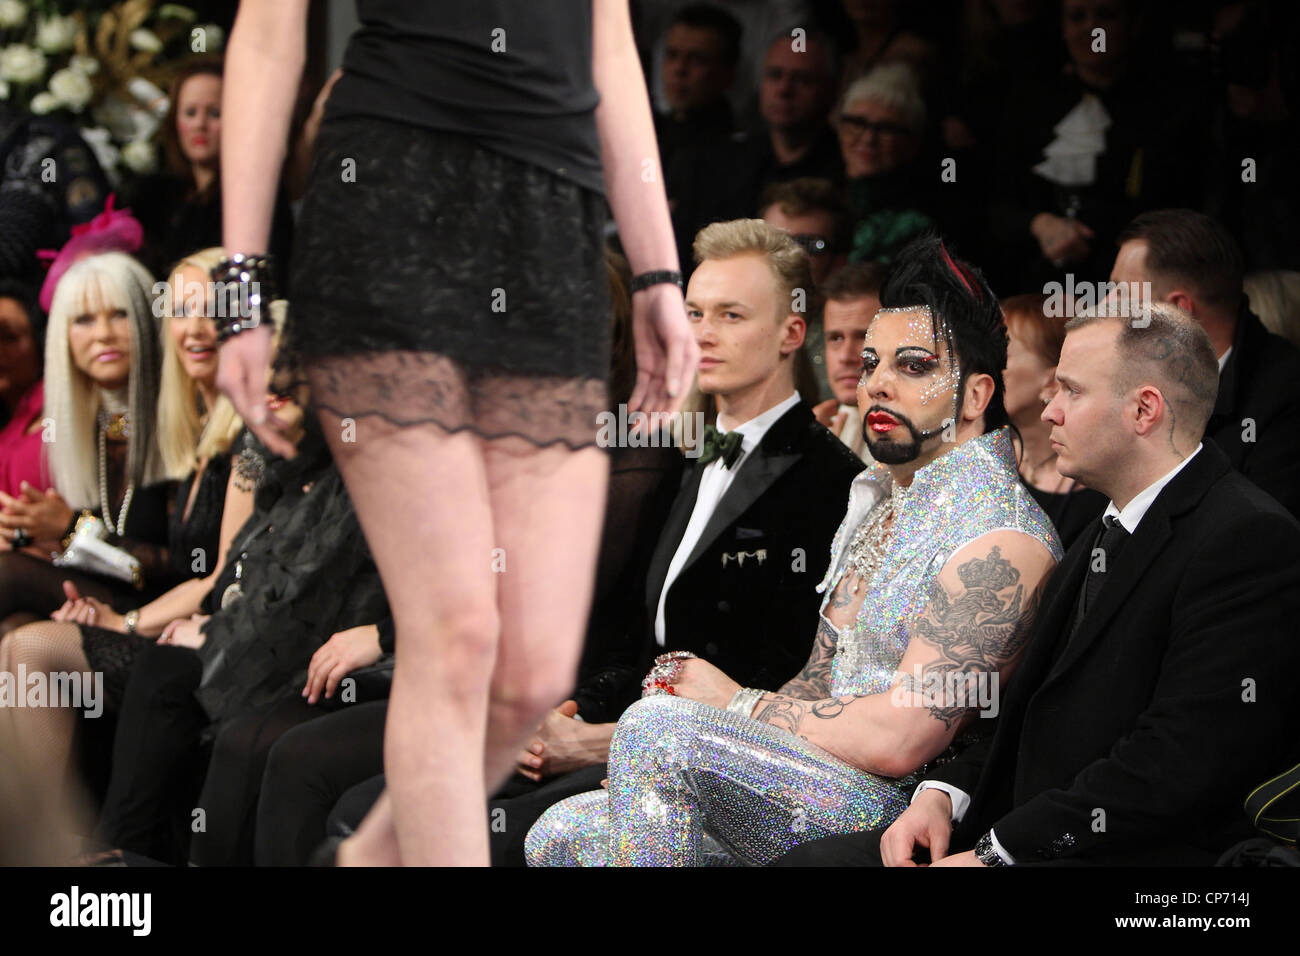 Harald Gloeoeckler, fashion designer, during presentation of his new collection, Berlin, Germany - Stock Image